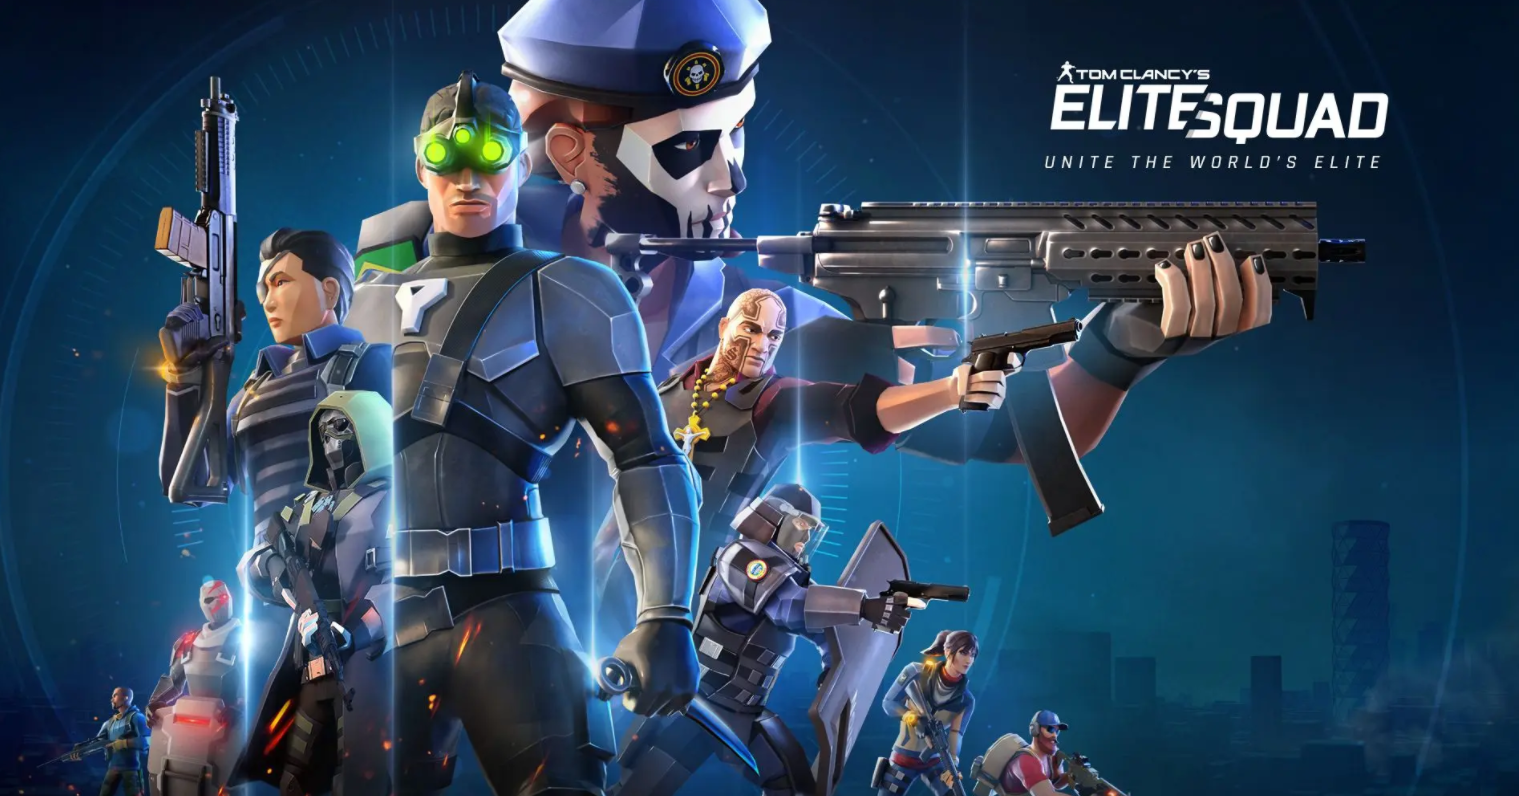 Tom Clancy's Elite Squad for PC